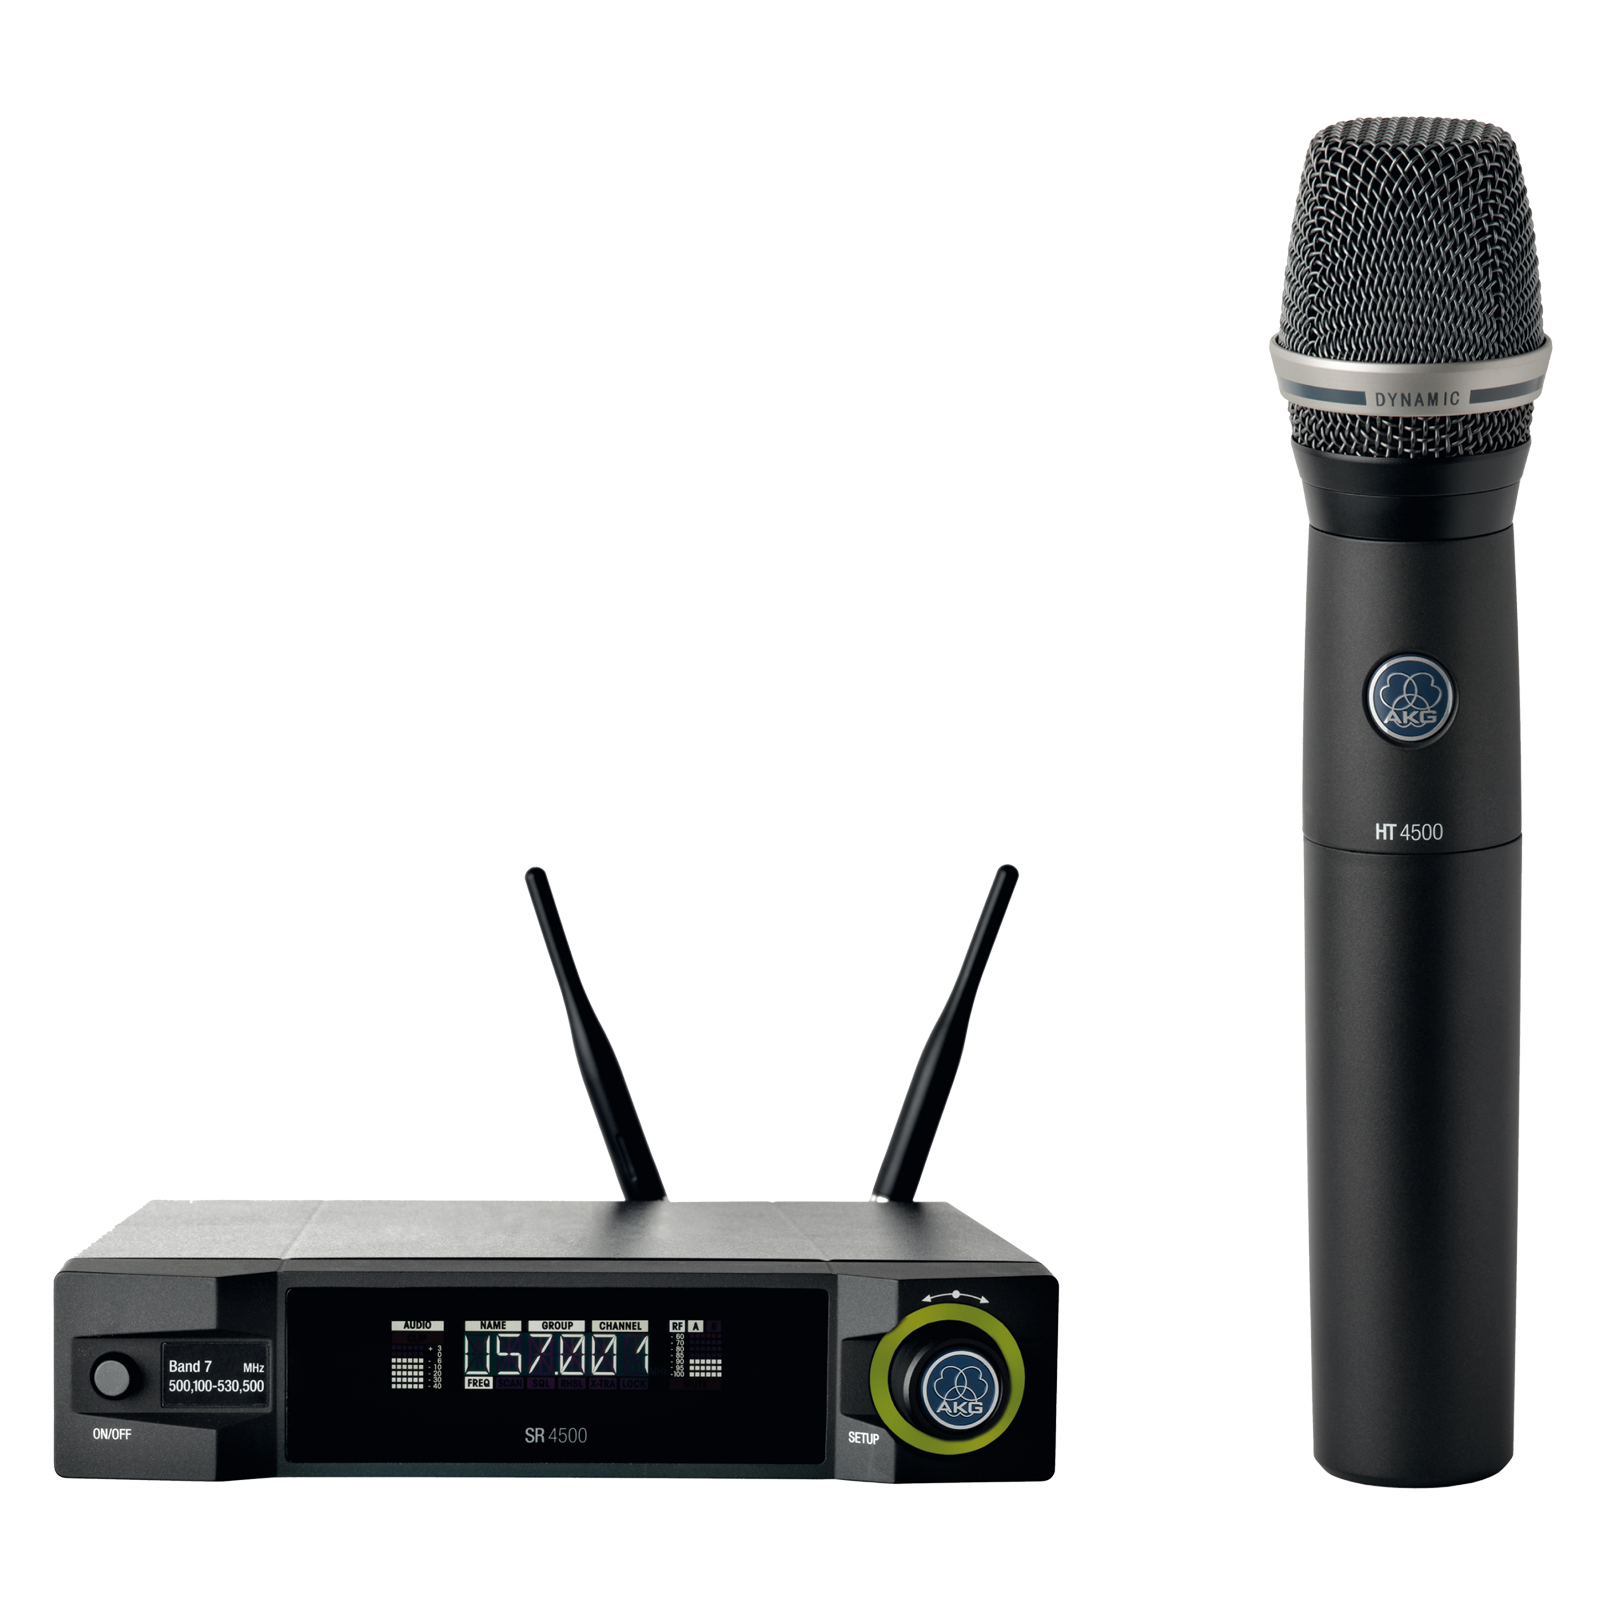 WMS4500 D7 Set - Black - Reference wireless microphone system - Hero